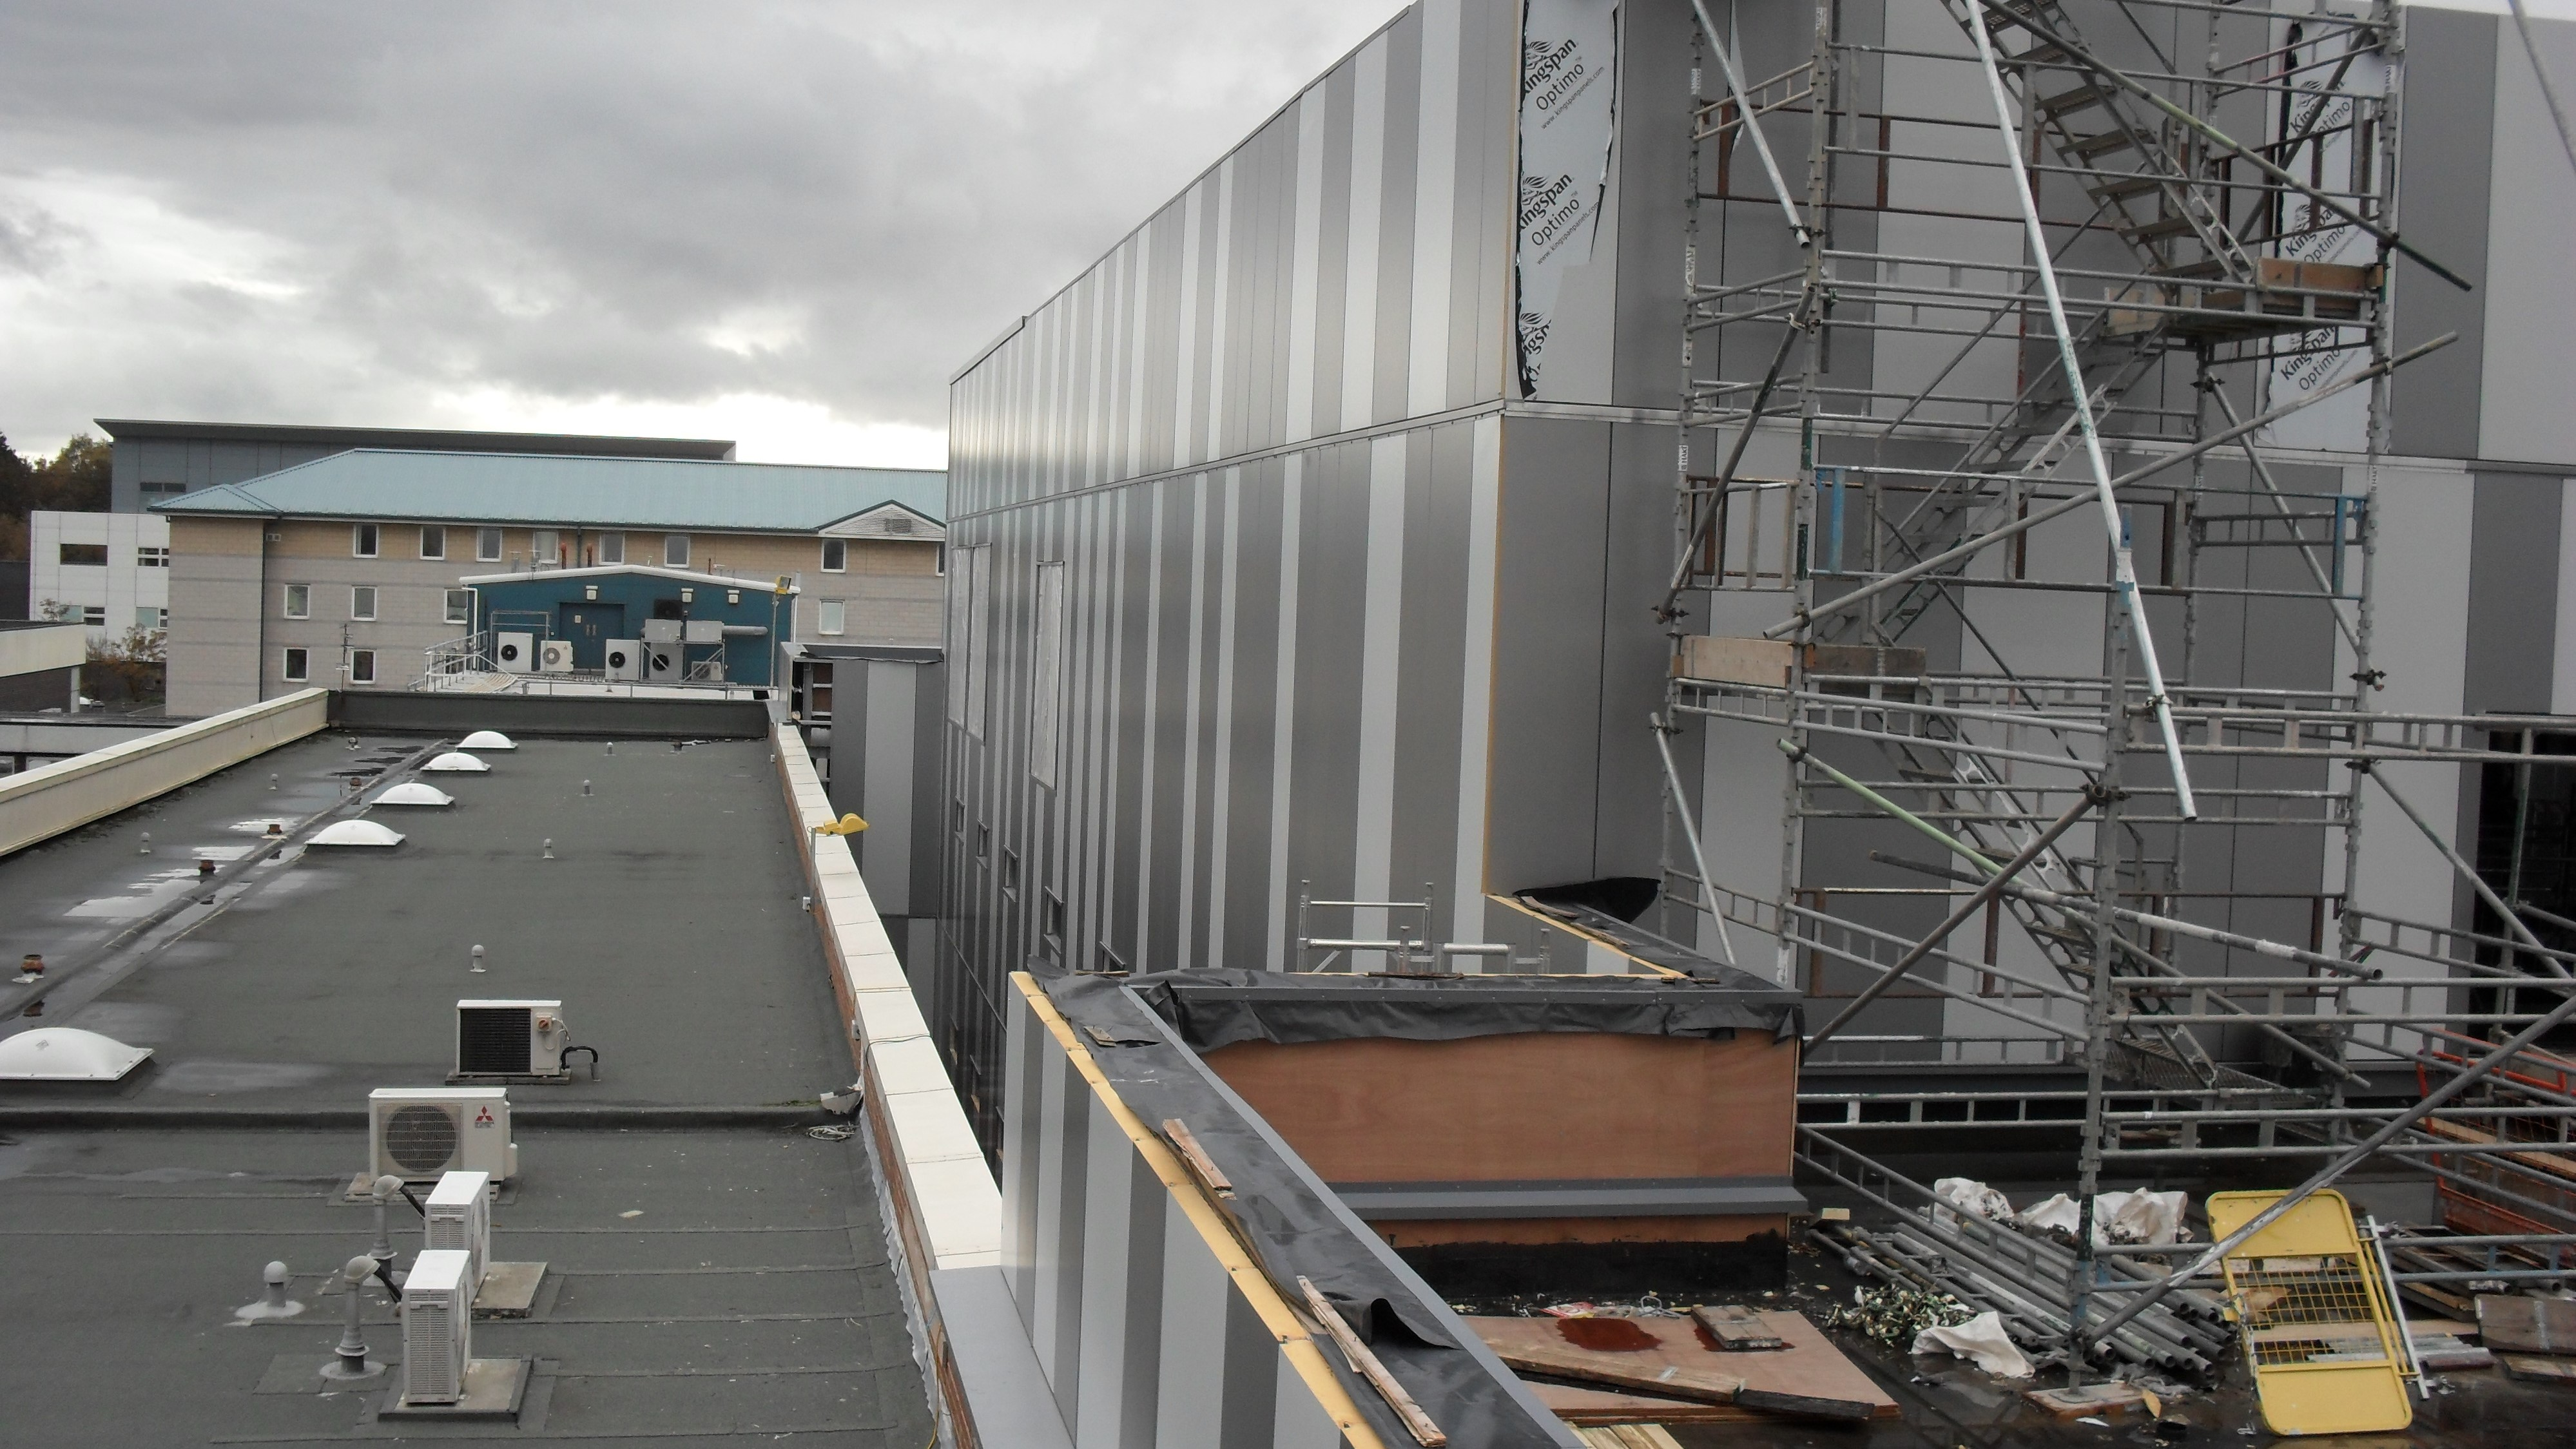 Aintree Hospital Reynolux Roofing Cladding Longworth Aintree Hospital Liverpool Fatra Optimo Traditional Textures (12)